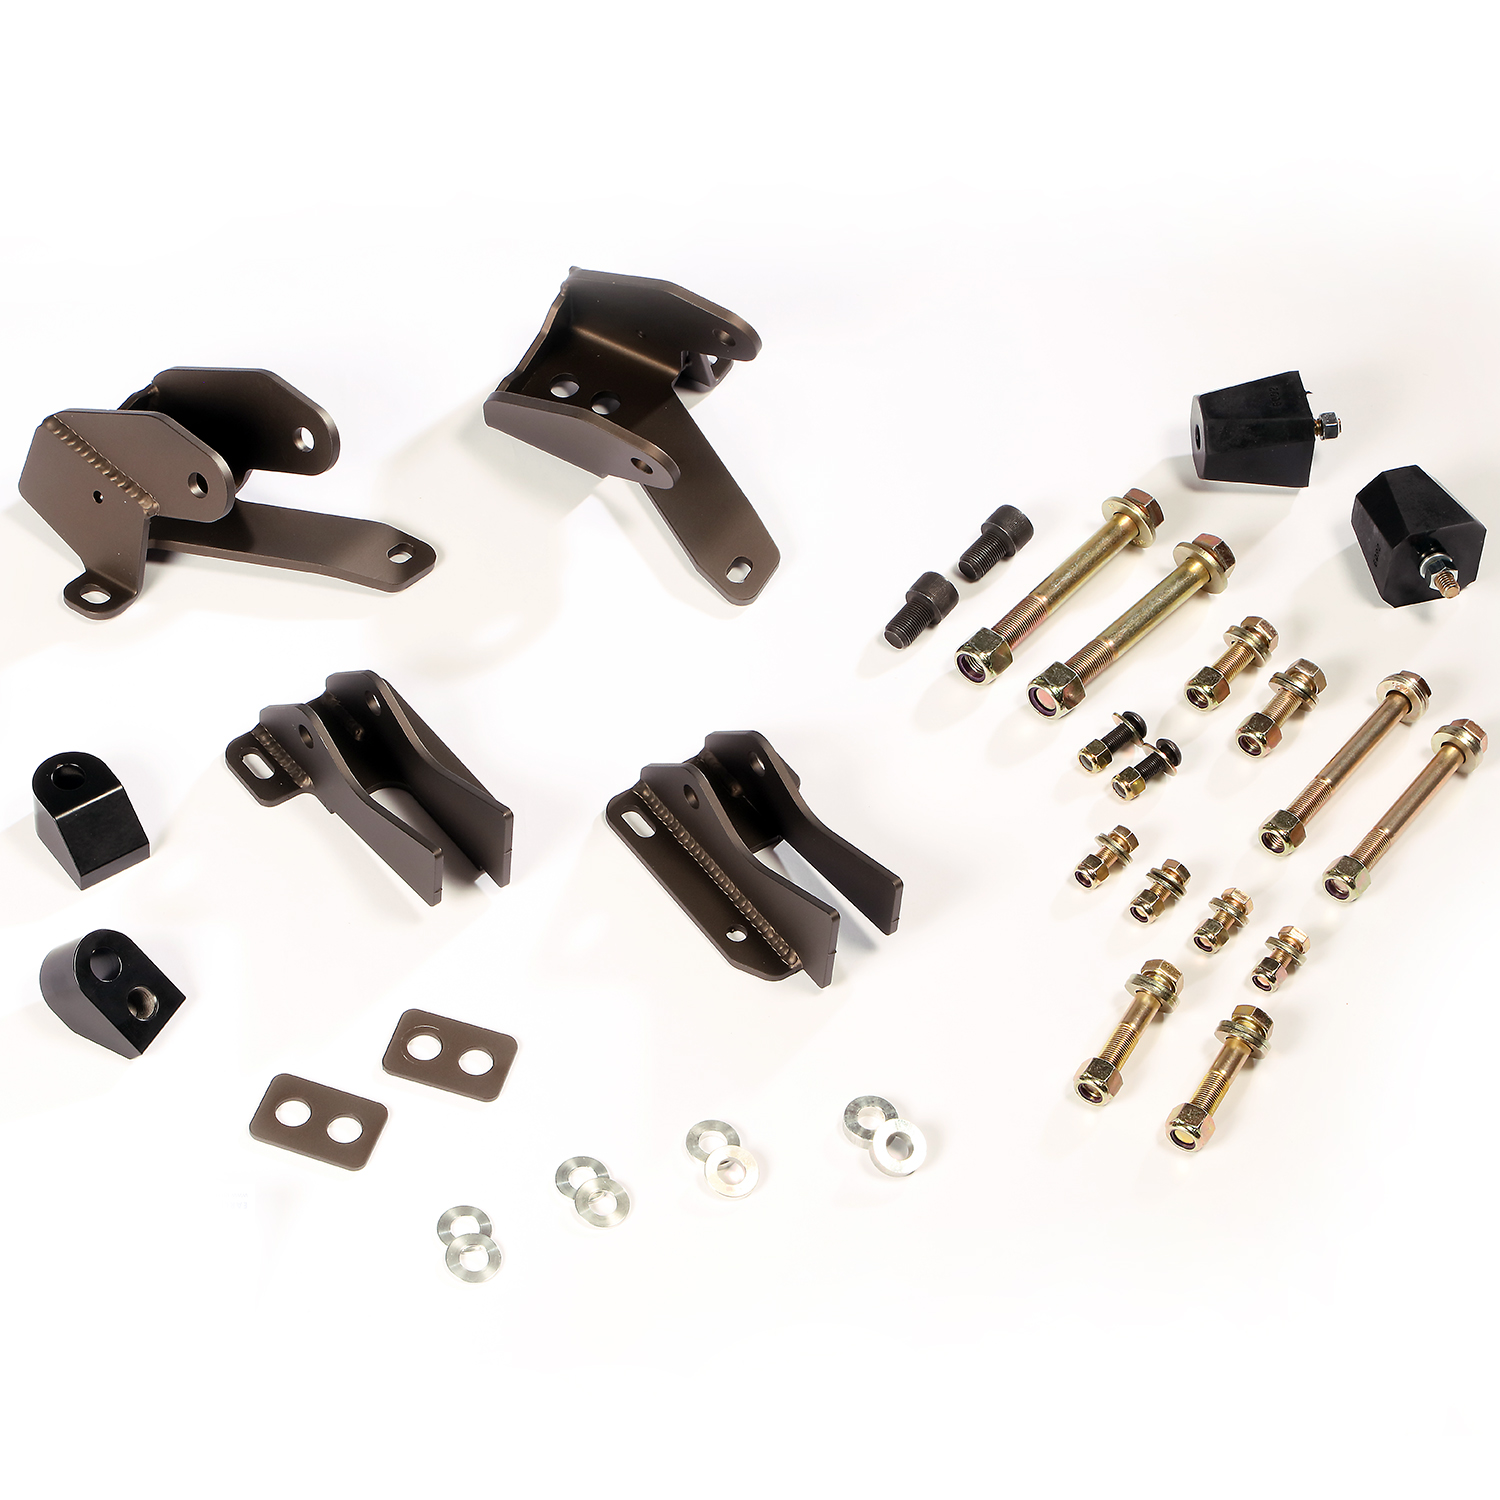 Coil Over Rear Mount Kit, 64-72 A-Body-23001R